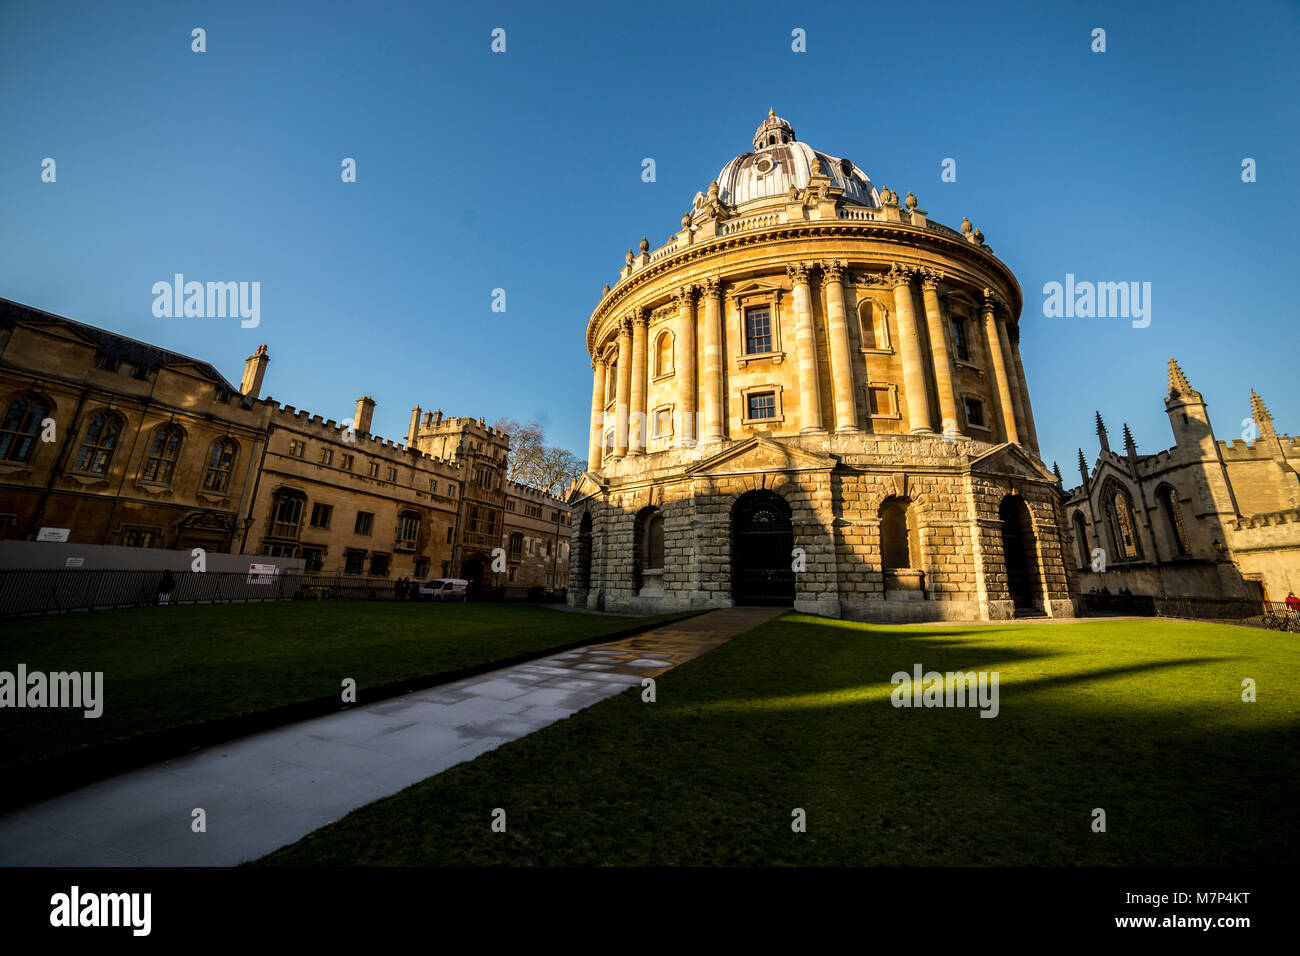 Radcliffe camera is a building of Oxford University, England, designed by James Gibbs in neo-classical style and - Stock Image